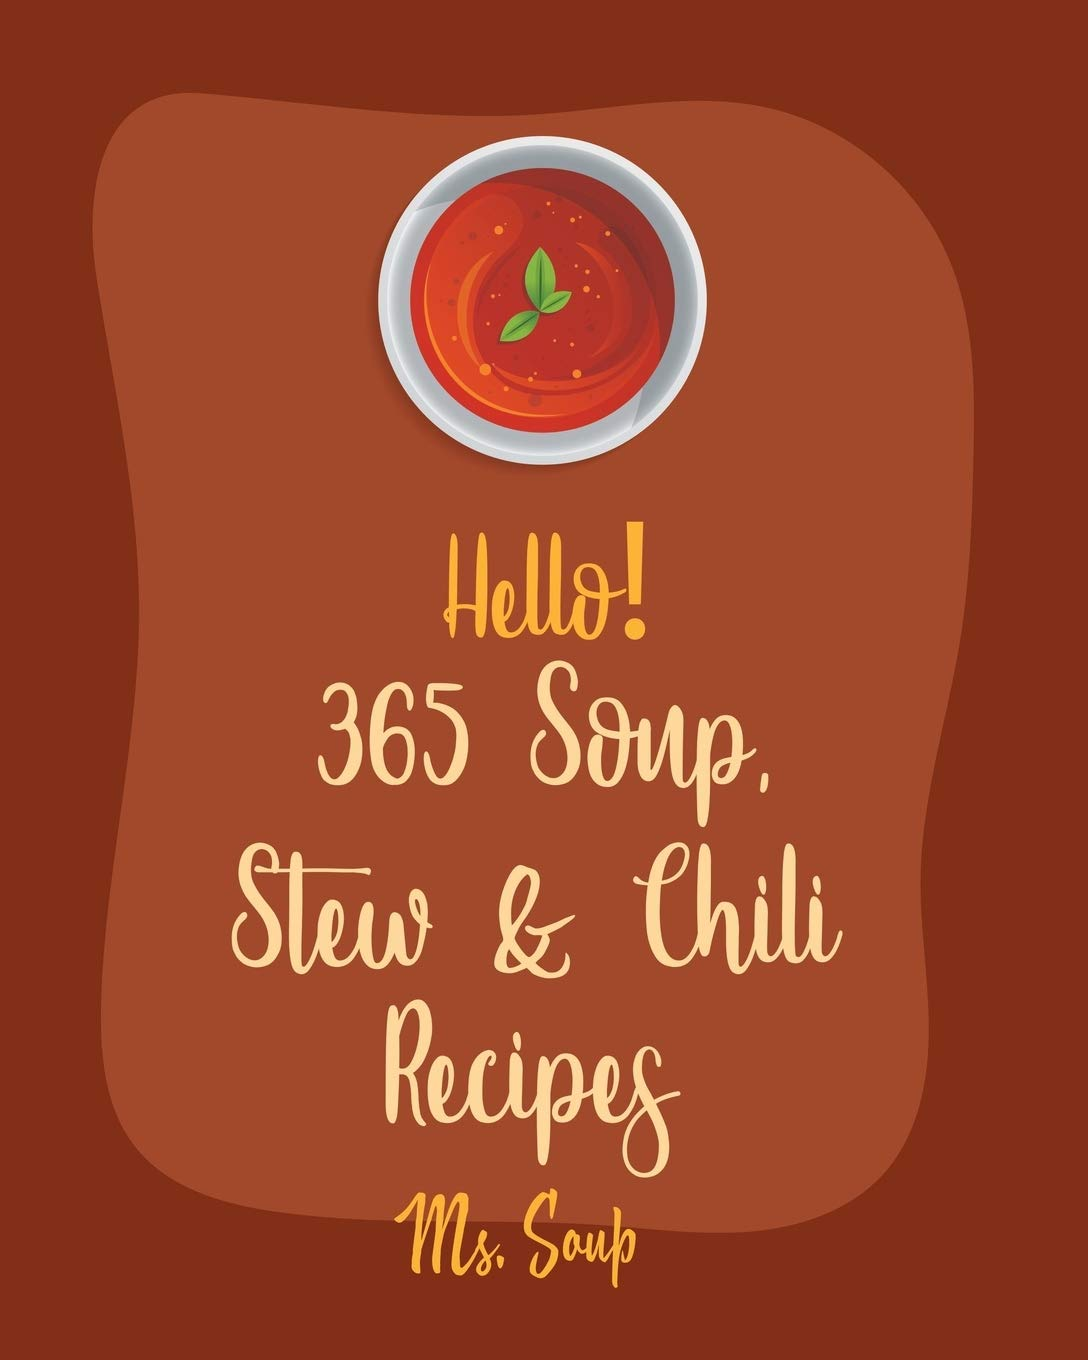 Hello! 365 Soup, Stew & Chili Recipes: Best Soup, Stew & Chili Cookbook Ever For Beginners [Soup Dumpling Cookbook, Vegetarian Chili Cookbook, Mexican Soup Cookbook, Hearty Soup Cookbook] [Book 1]